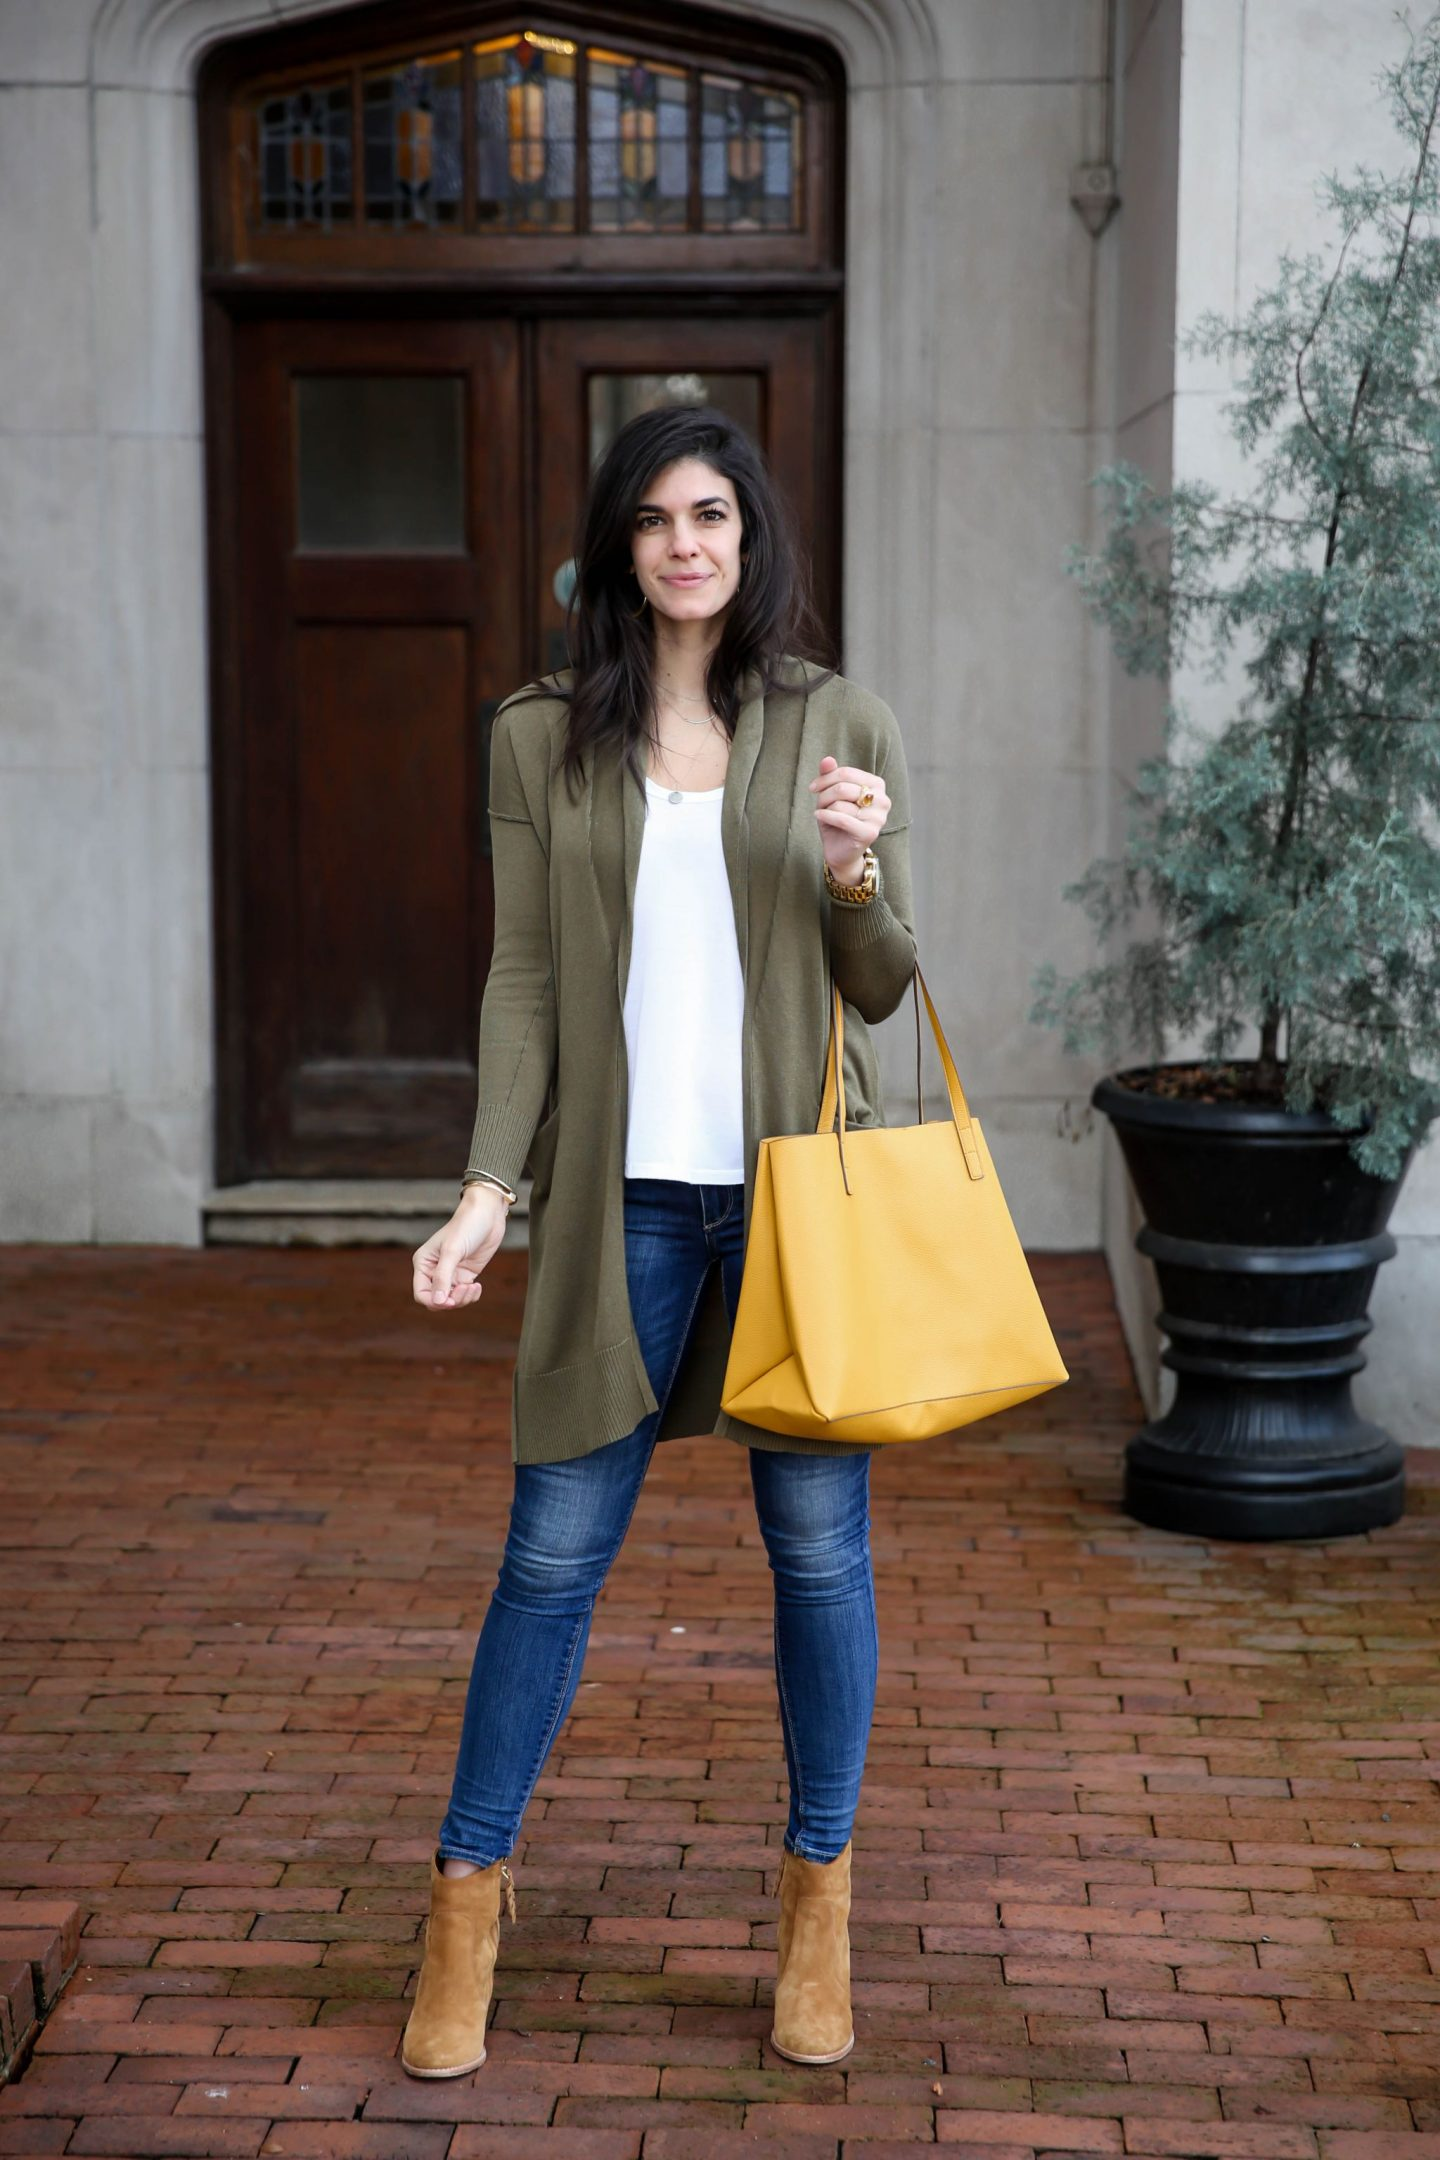 yellow tote - spring style - Lauren Schwaiger outfit inspiration